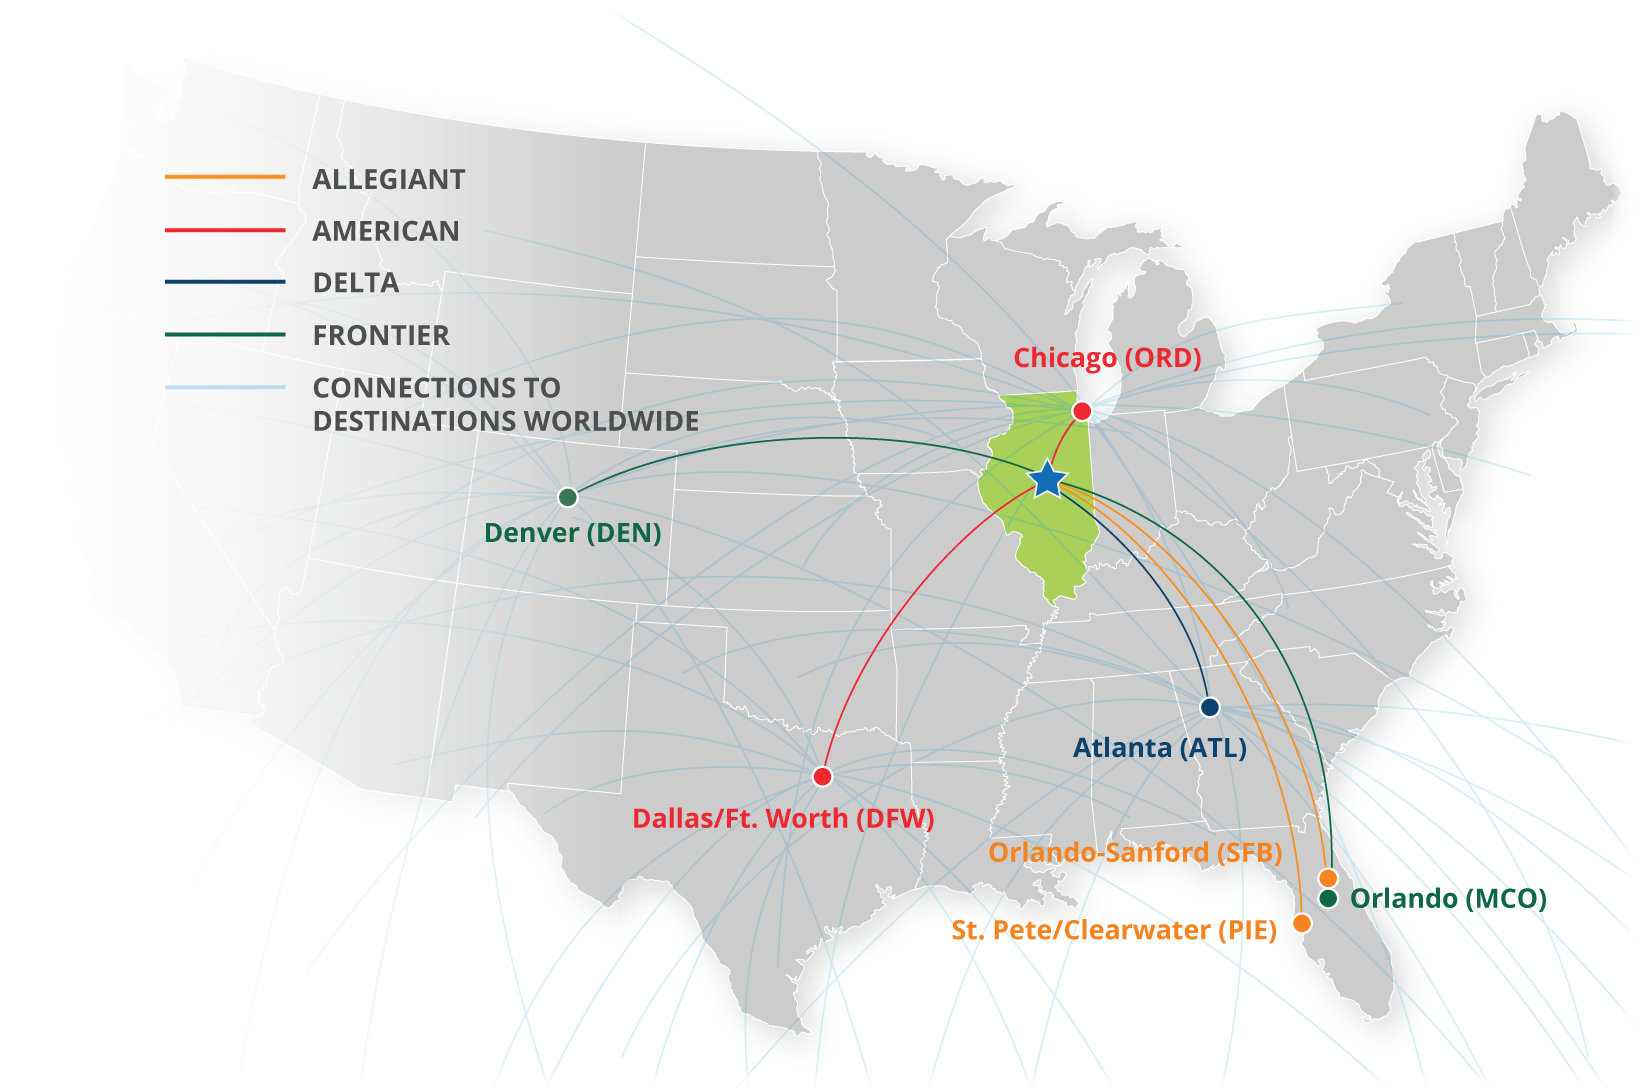 map showing flights from CIRA